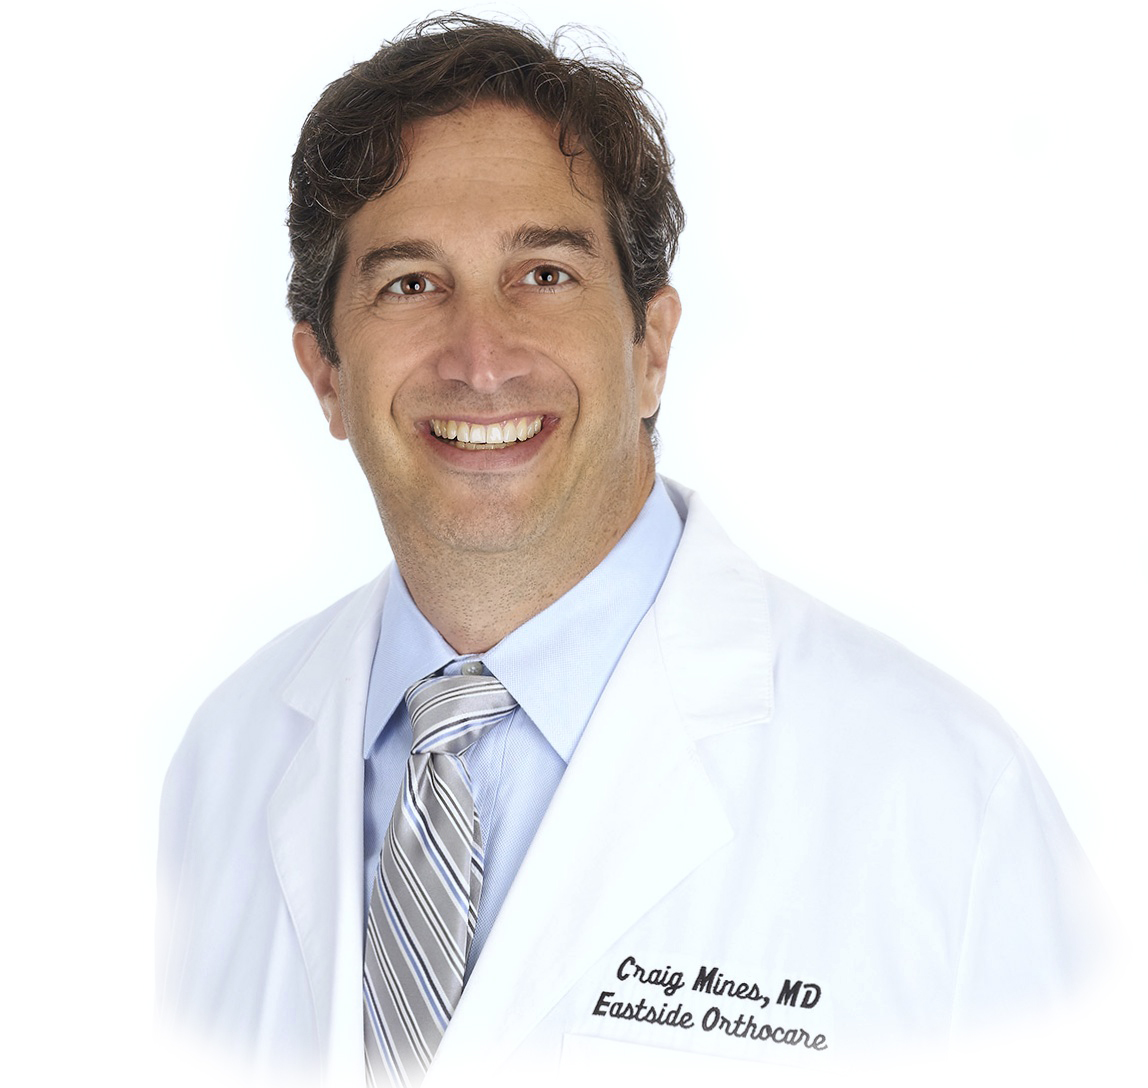 Dr. Craig Mines - Orthopedic Surgeon